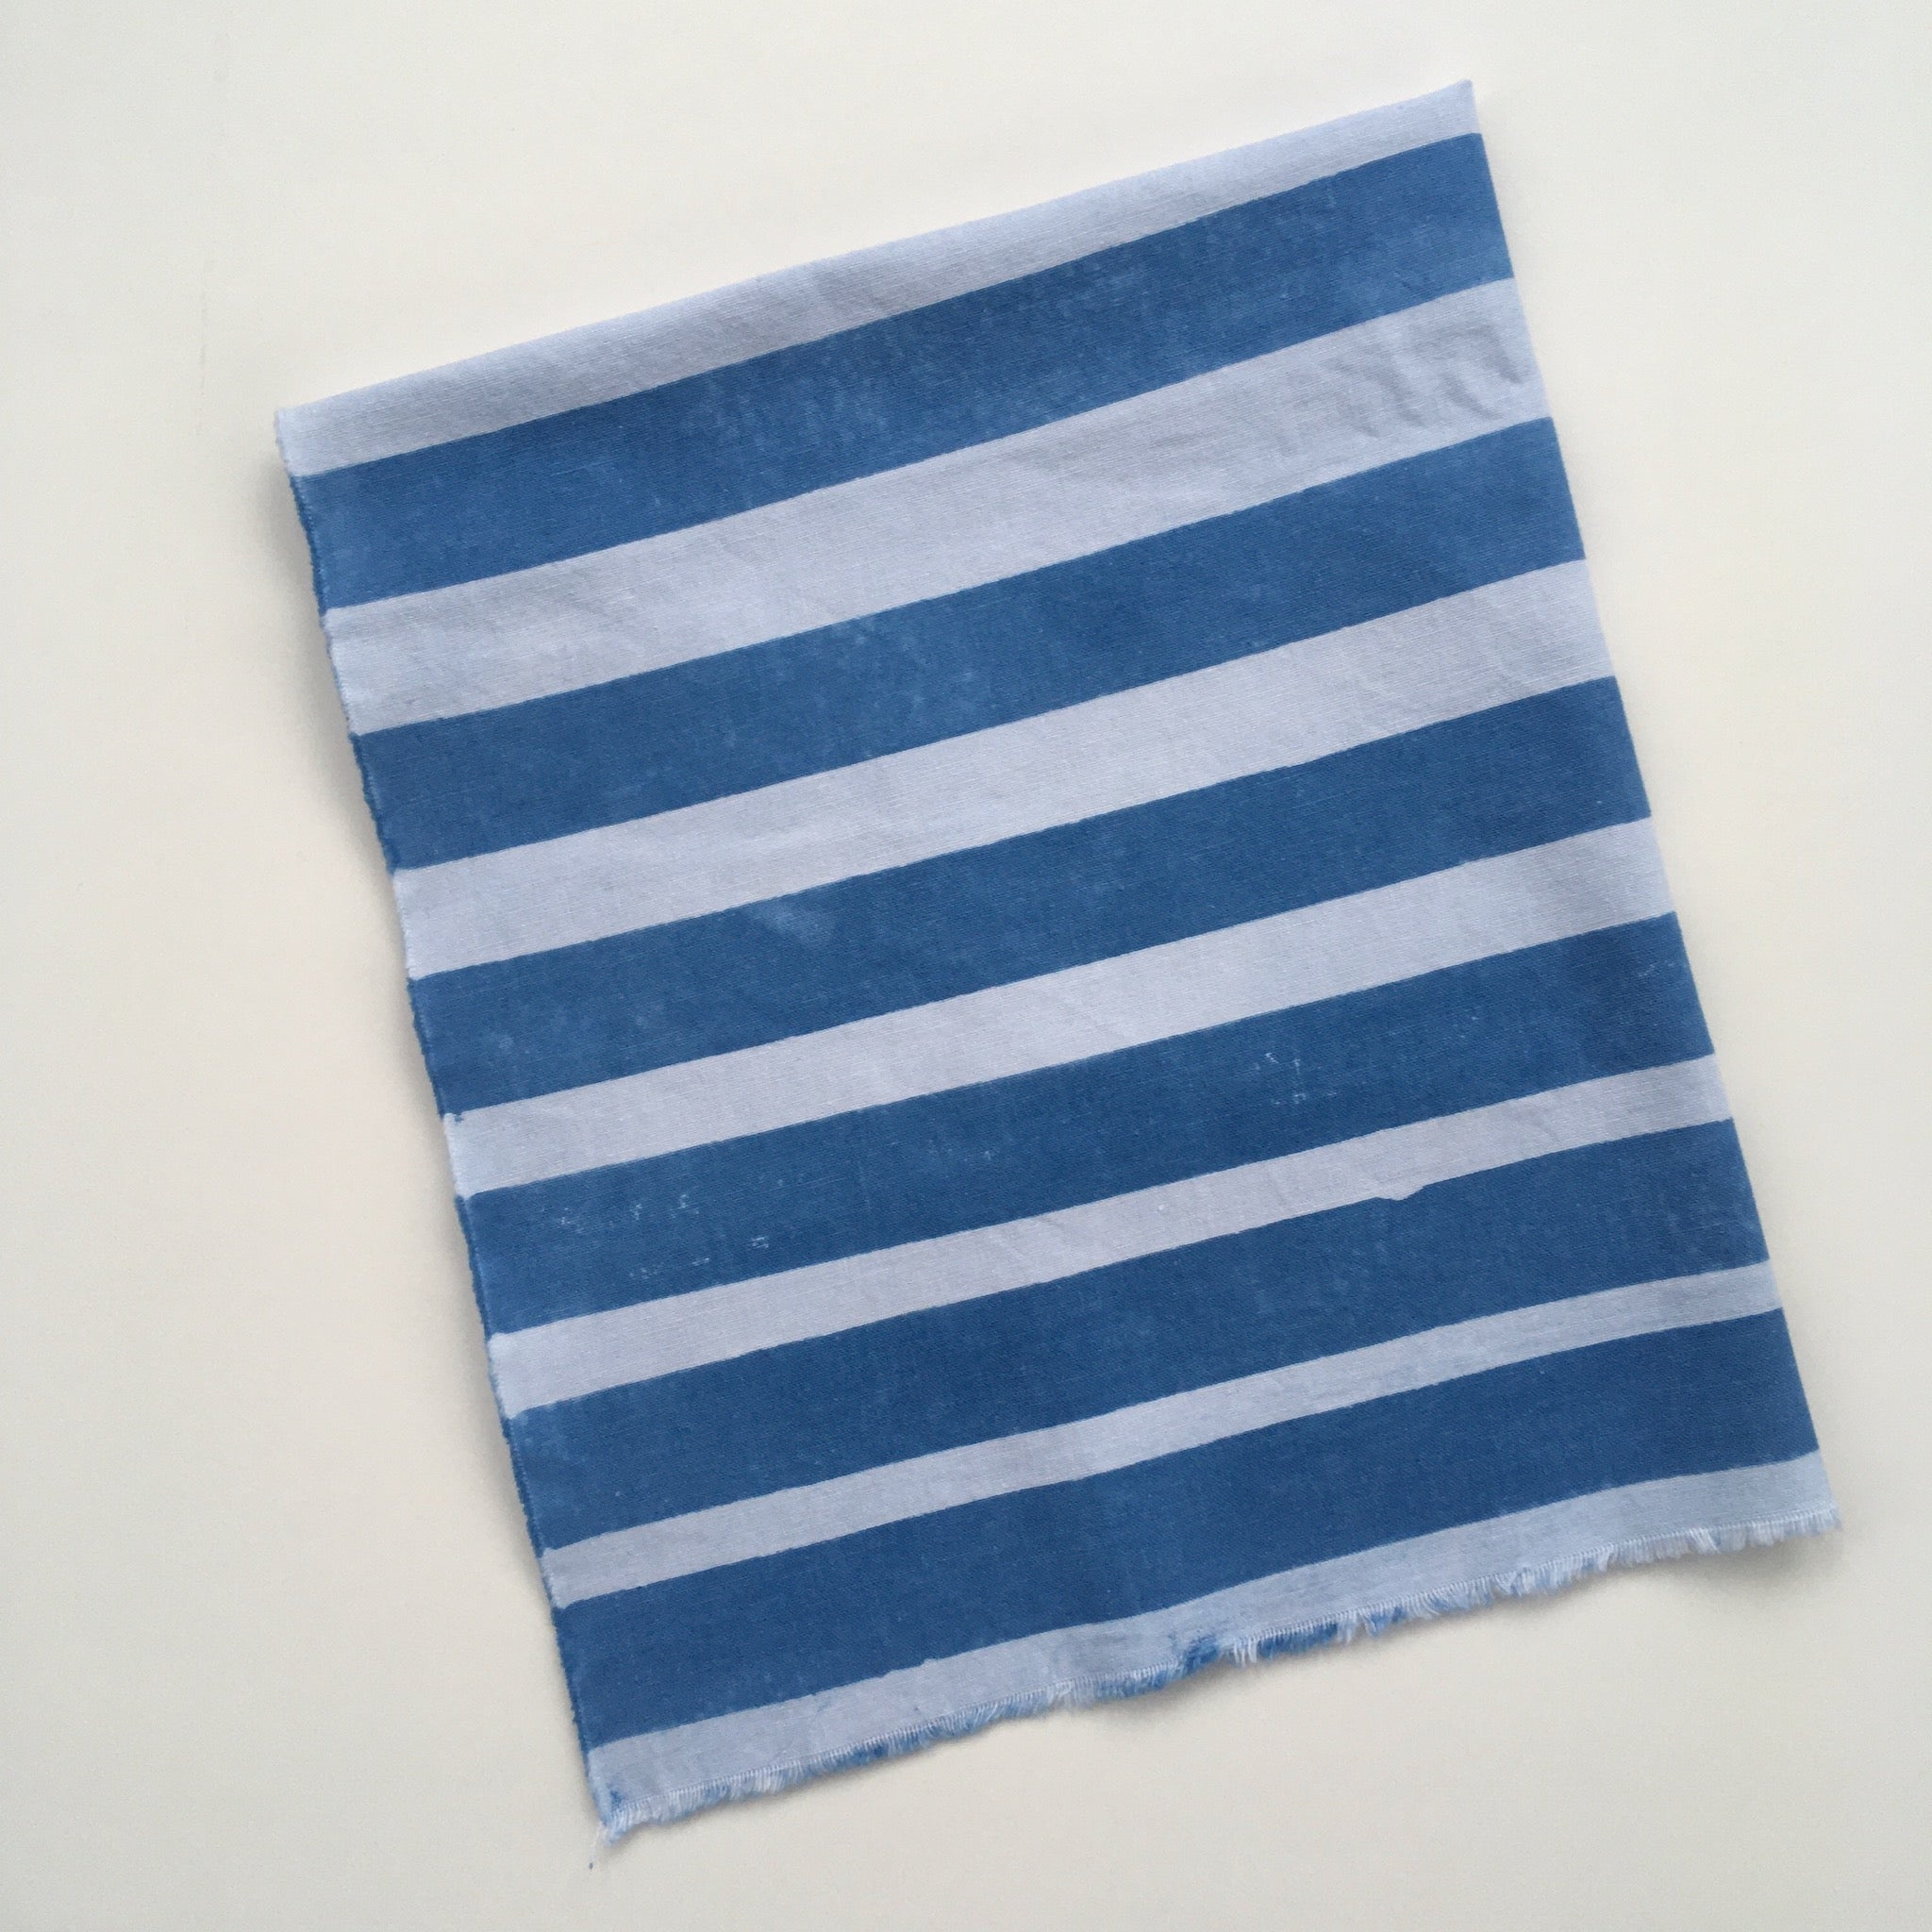 Fabric example dyed with clay resist: deep indigo blue with white stripes of varying width